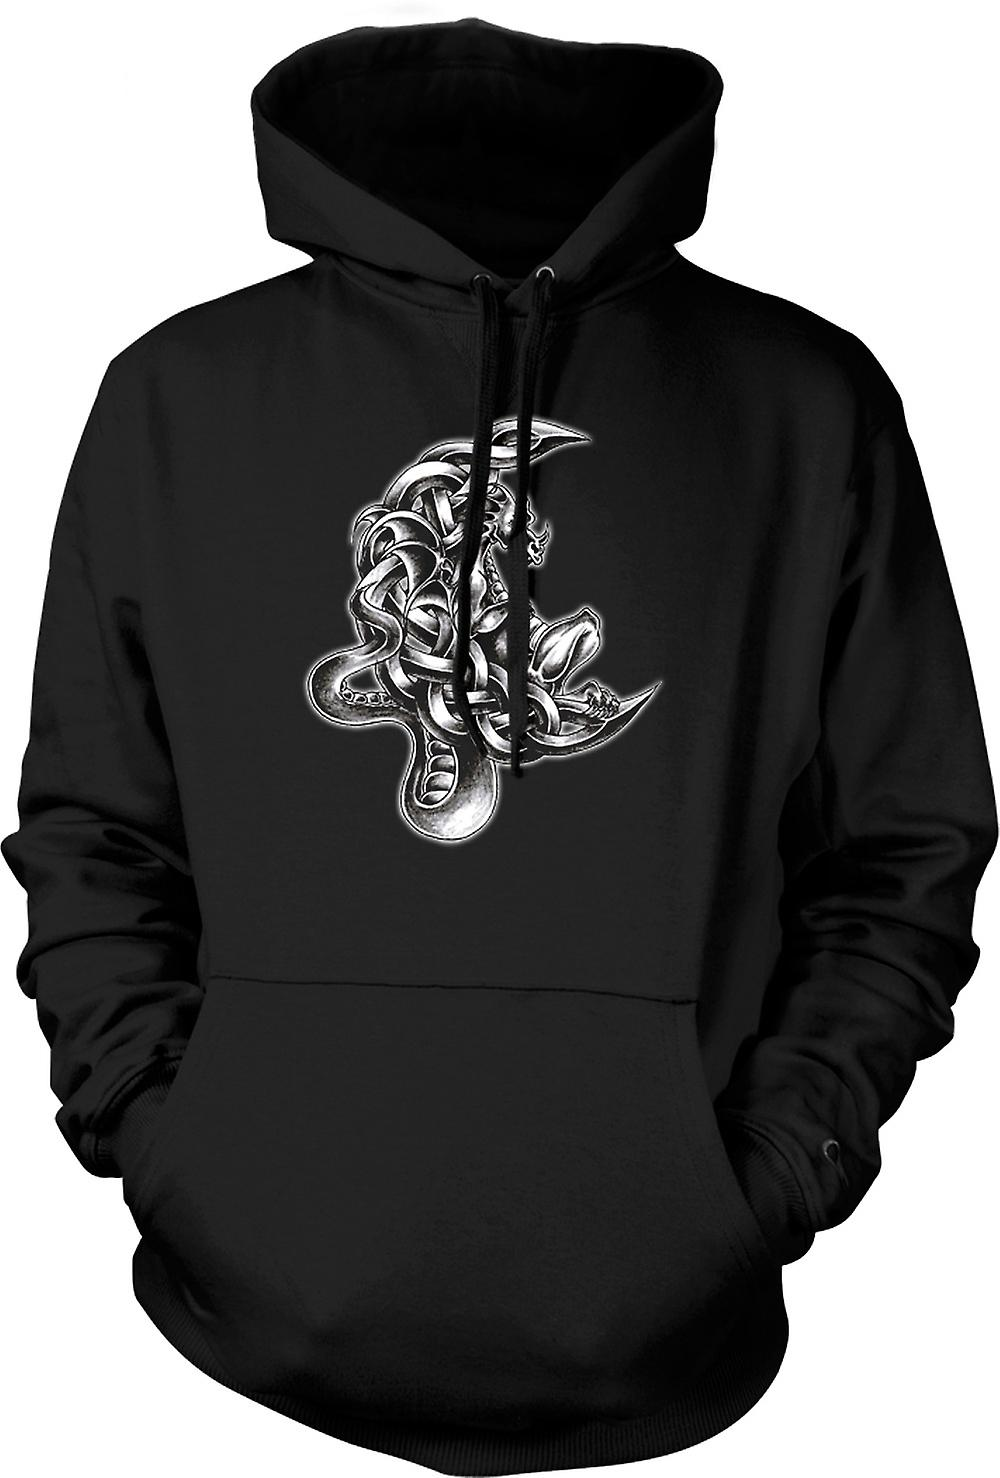 Mens Hoodie - tatouage de dragon - Esquisse